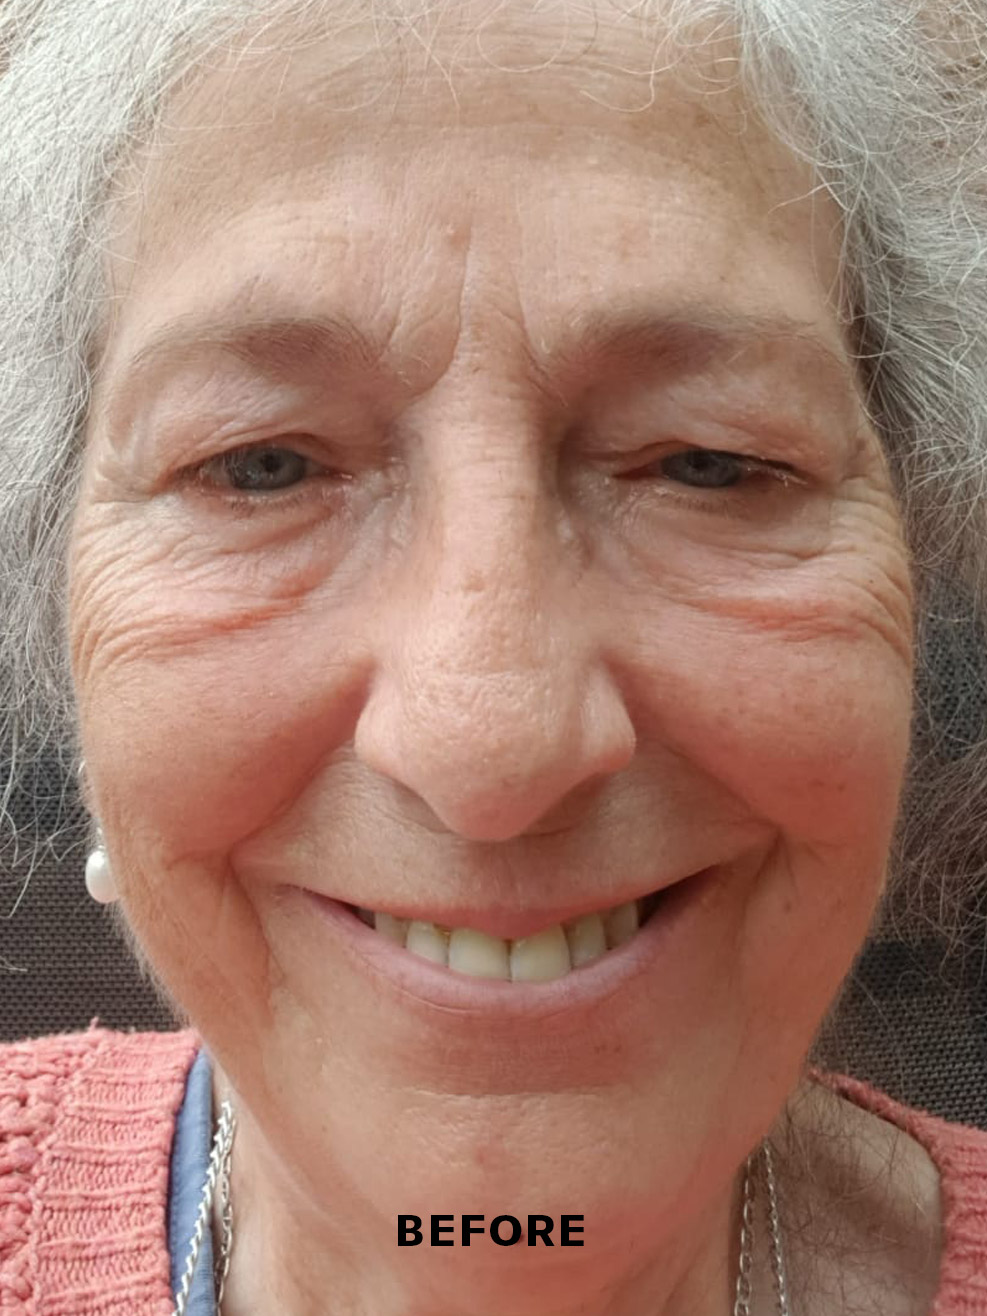 Non-surgical face lift before